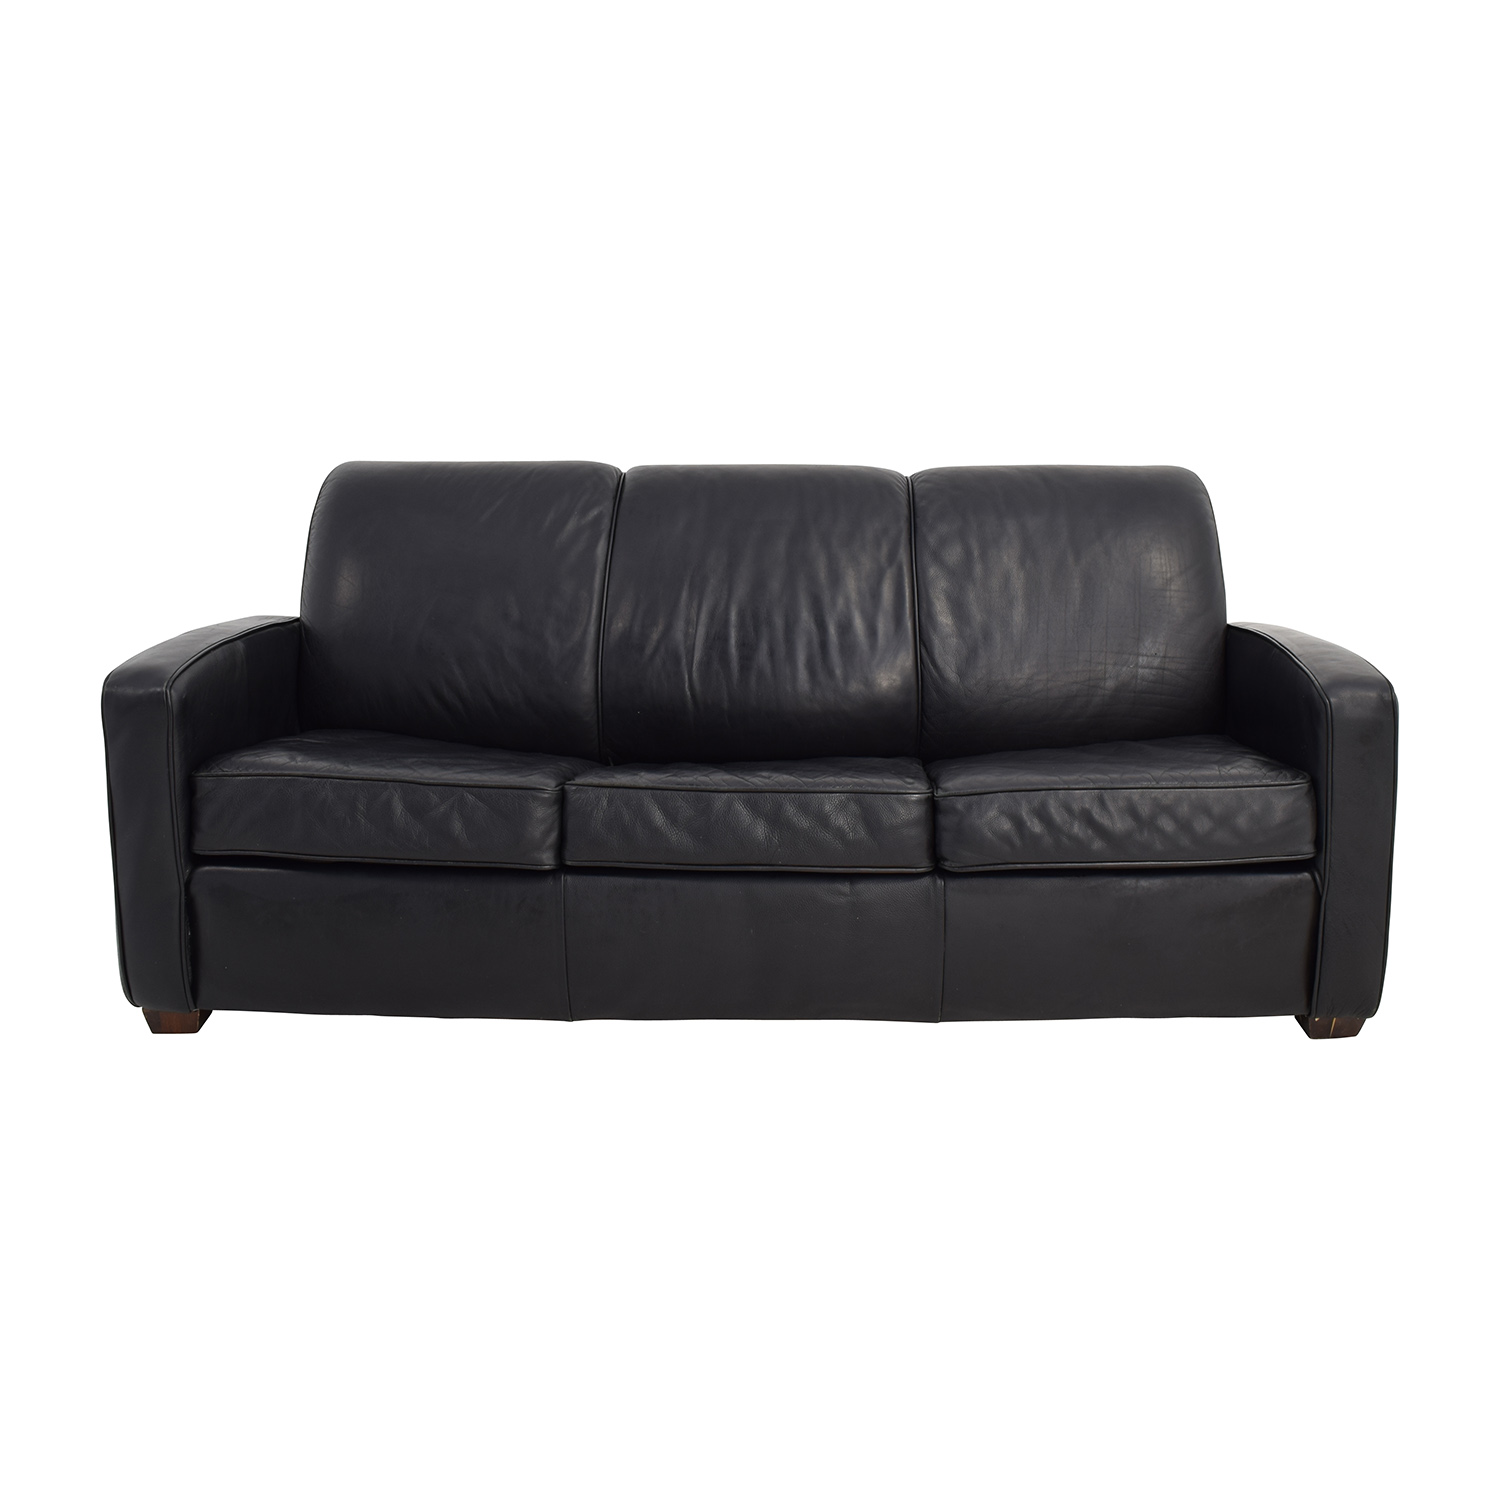 Leggett And Platt Leggett U0026 Platt Black Leather Sofa Bed Black ...